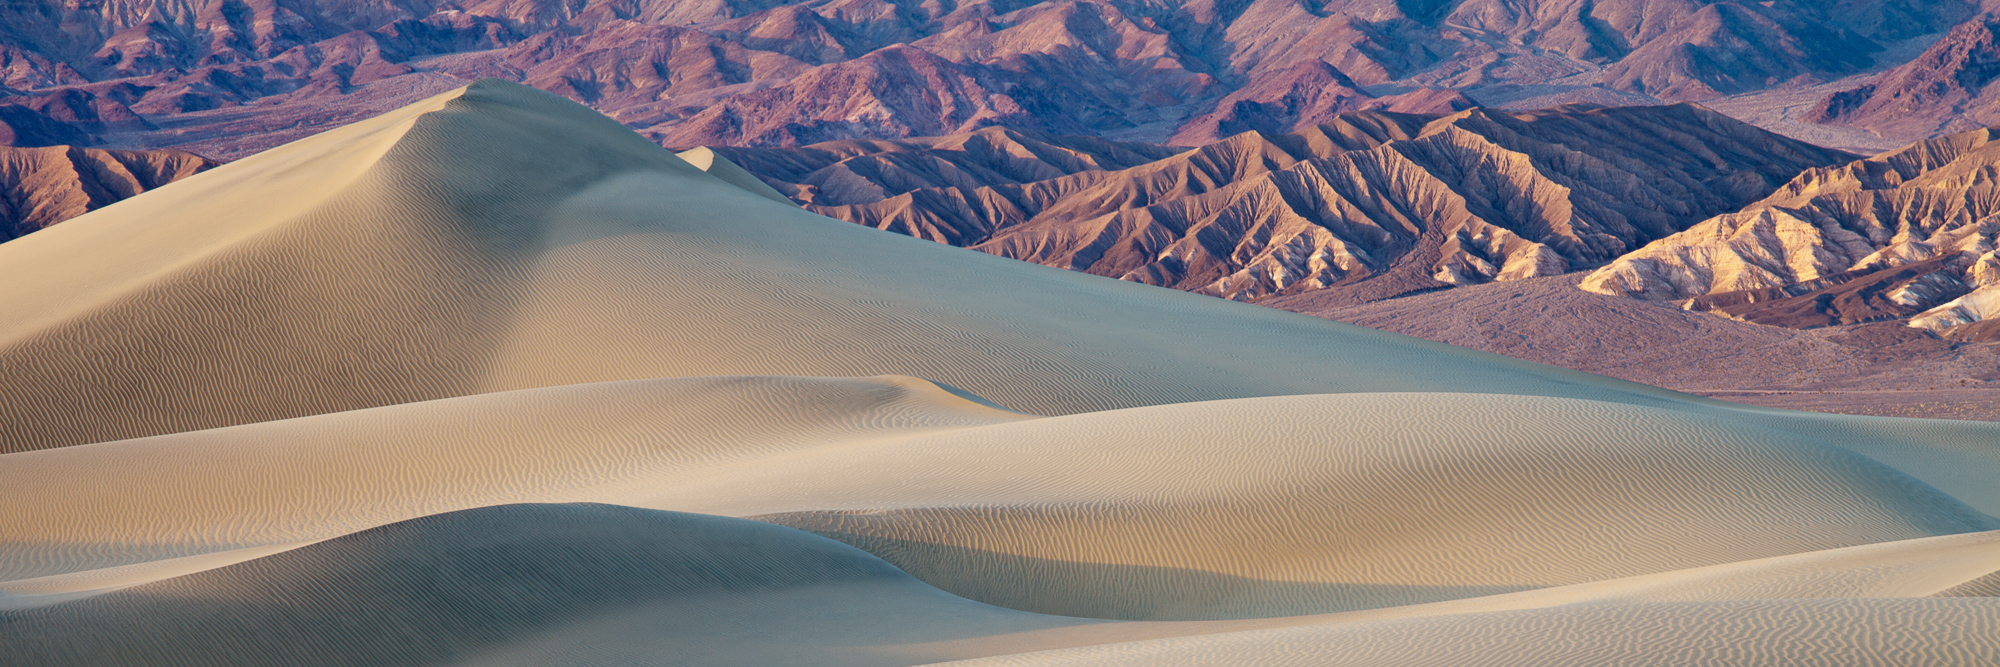 Mountains rise beyond the sand dunes of Mesquite Flat, Death Valley National Park